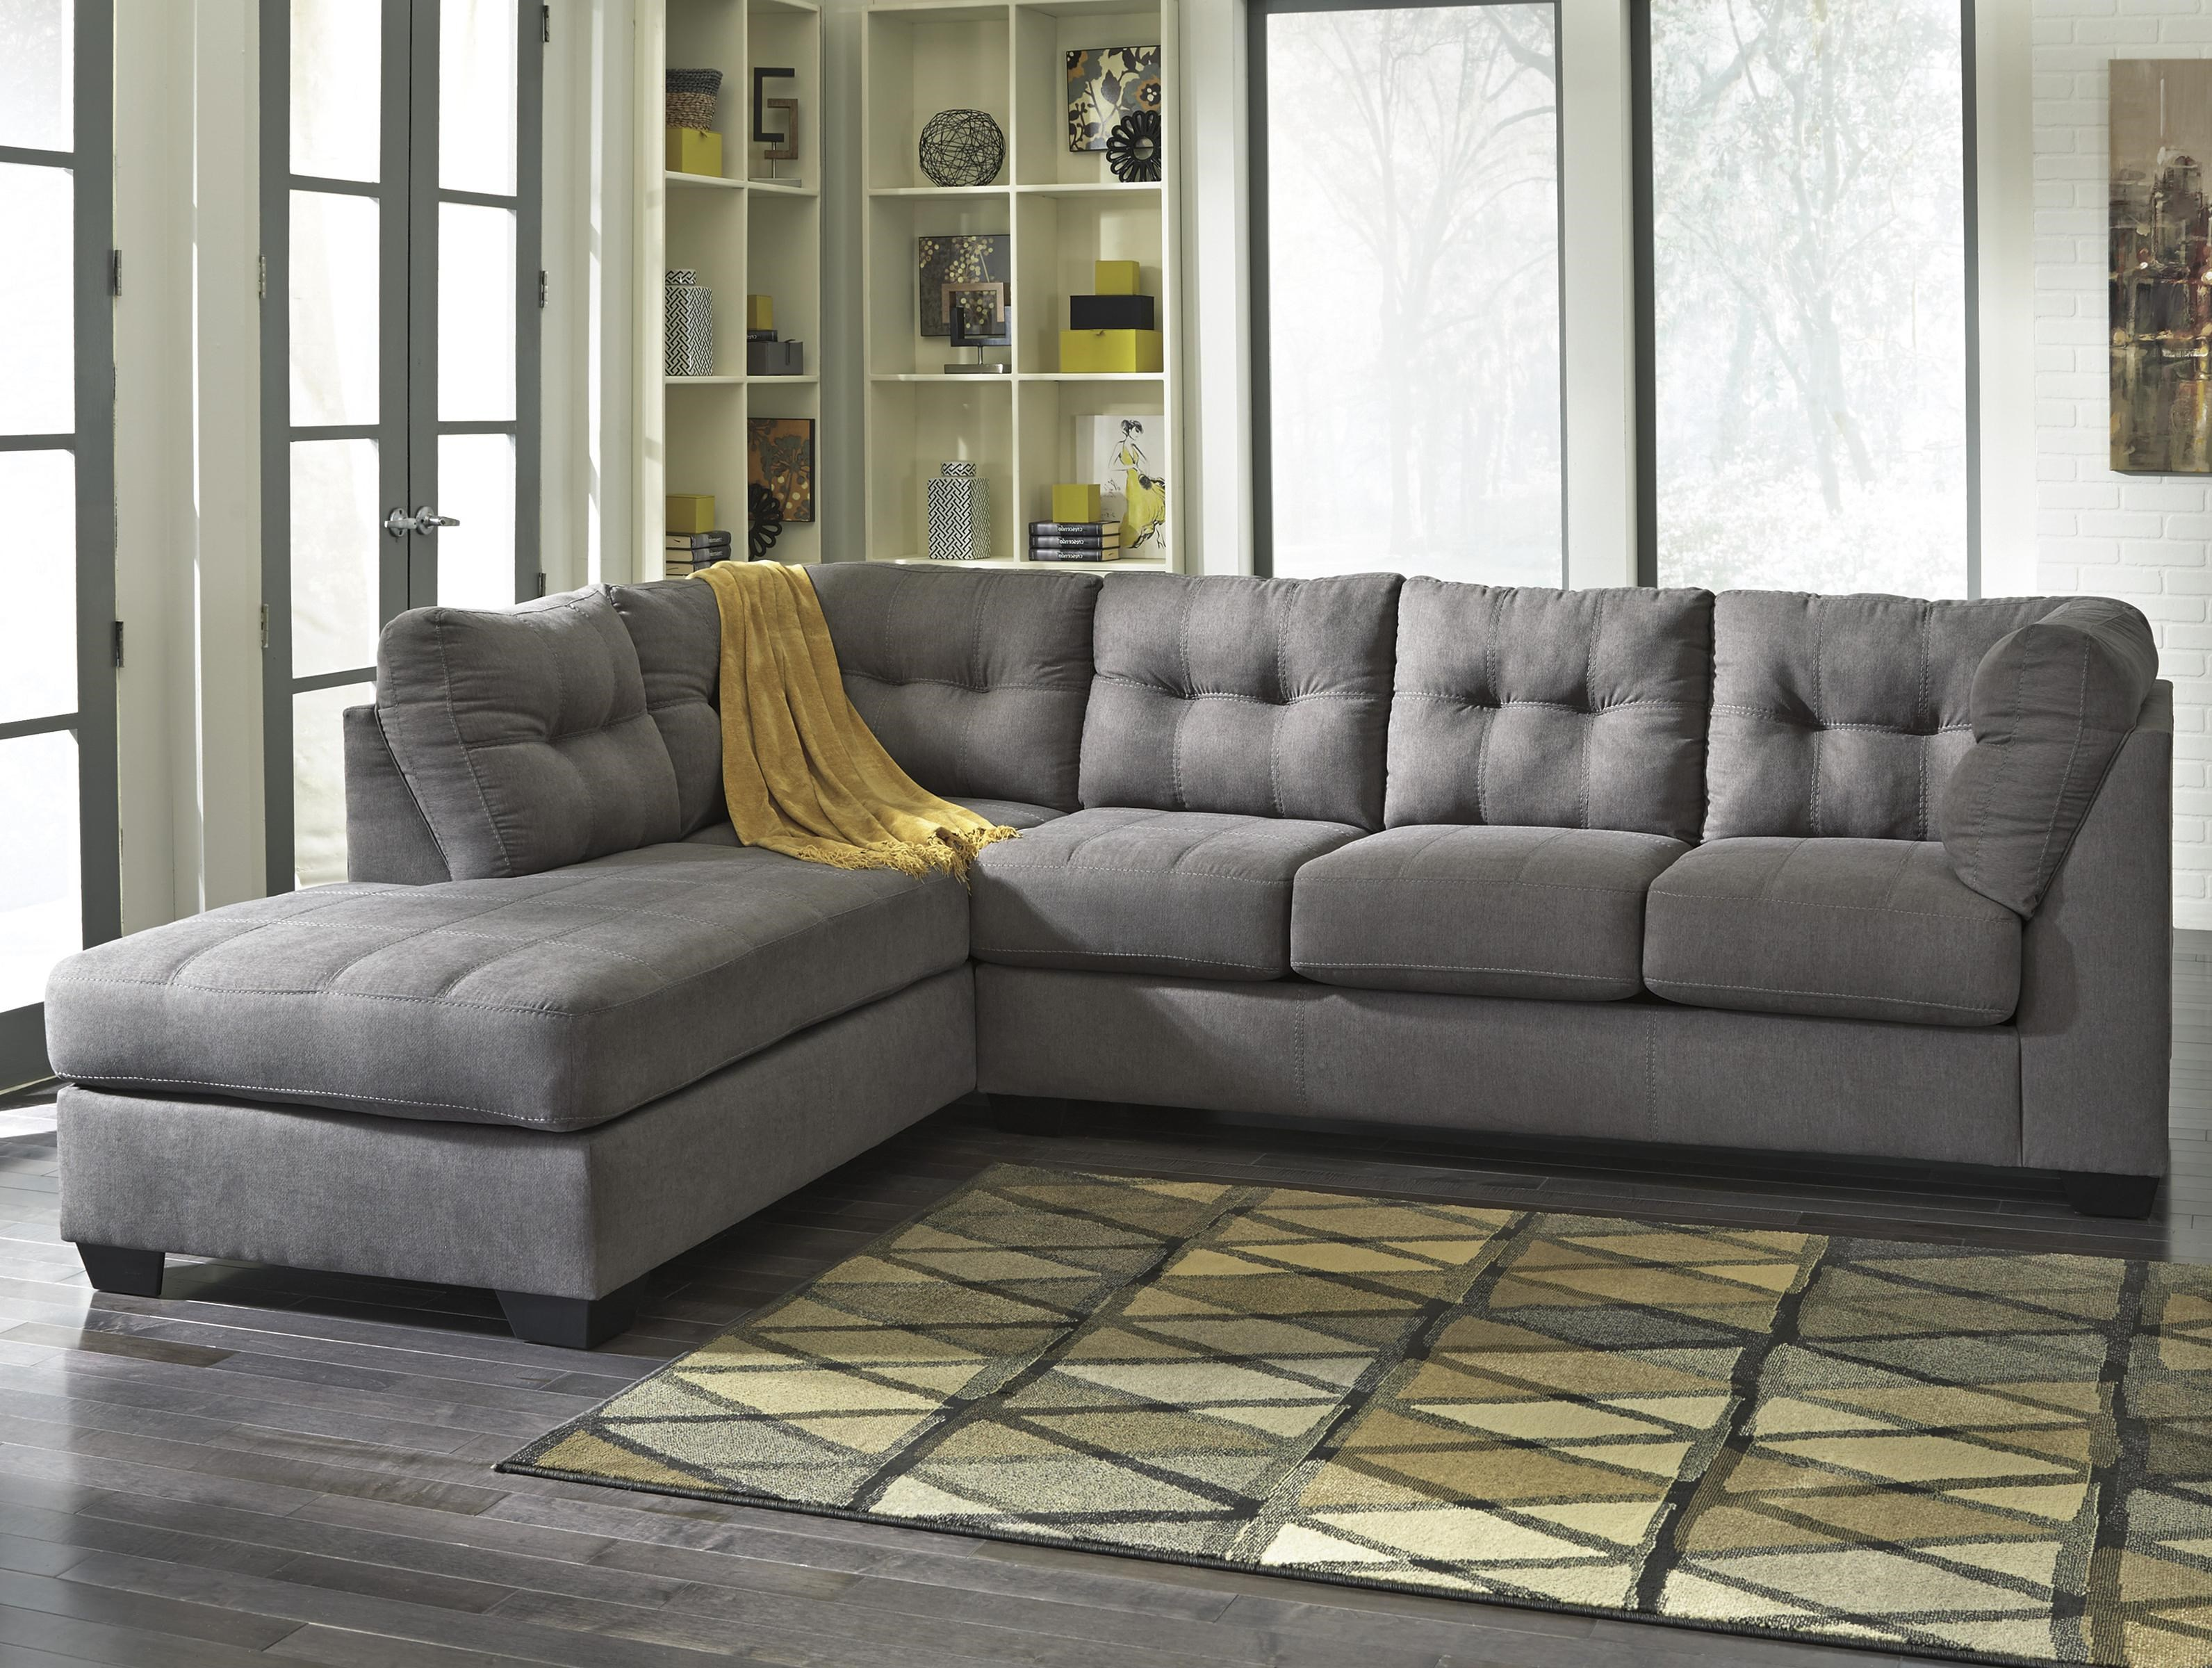 Picture of: Benchcraft Maier Charcoal 2 Piece Sectional W Sleeper Sofa Left Chaise Sam Levitz Furniture Sectional Sofas